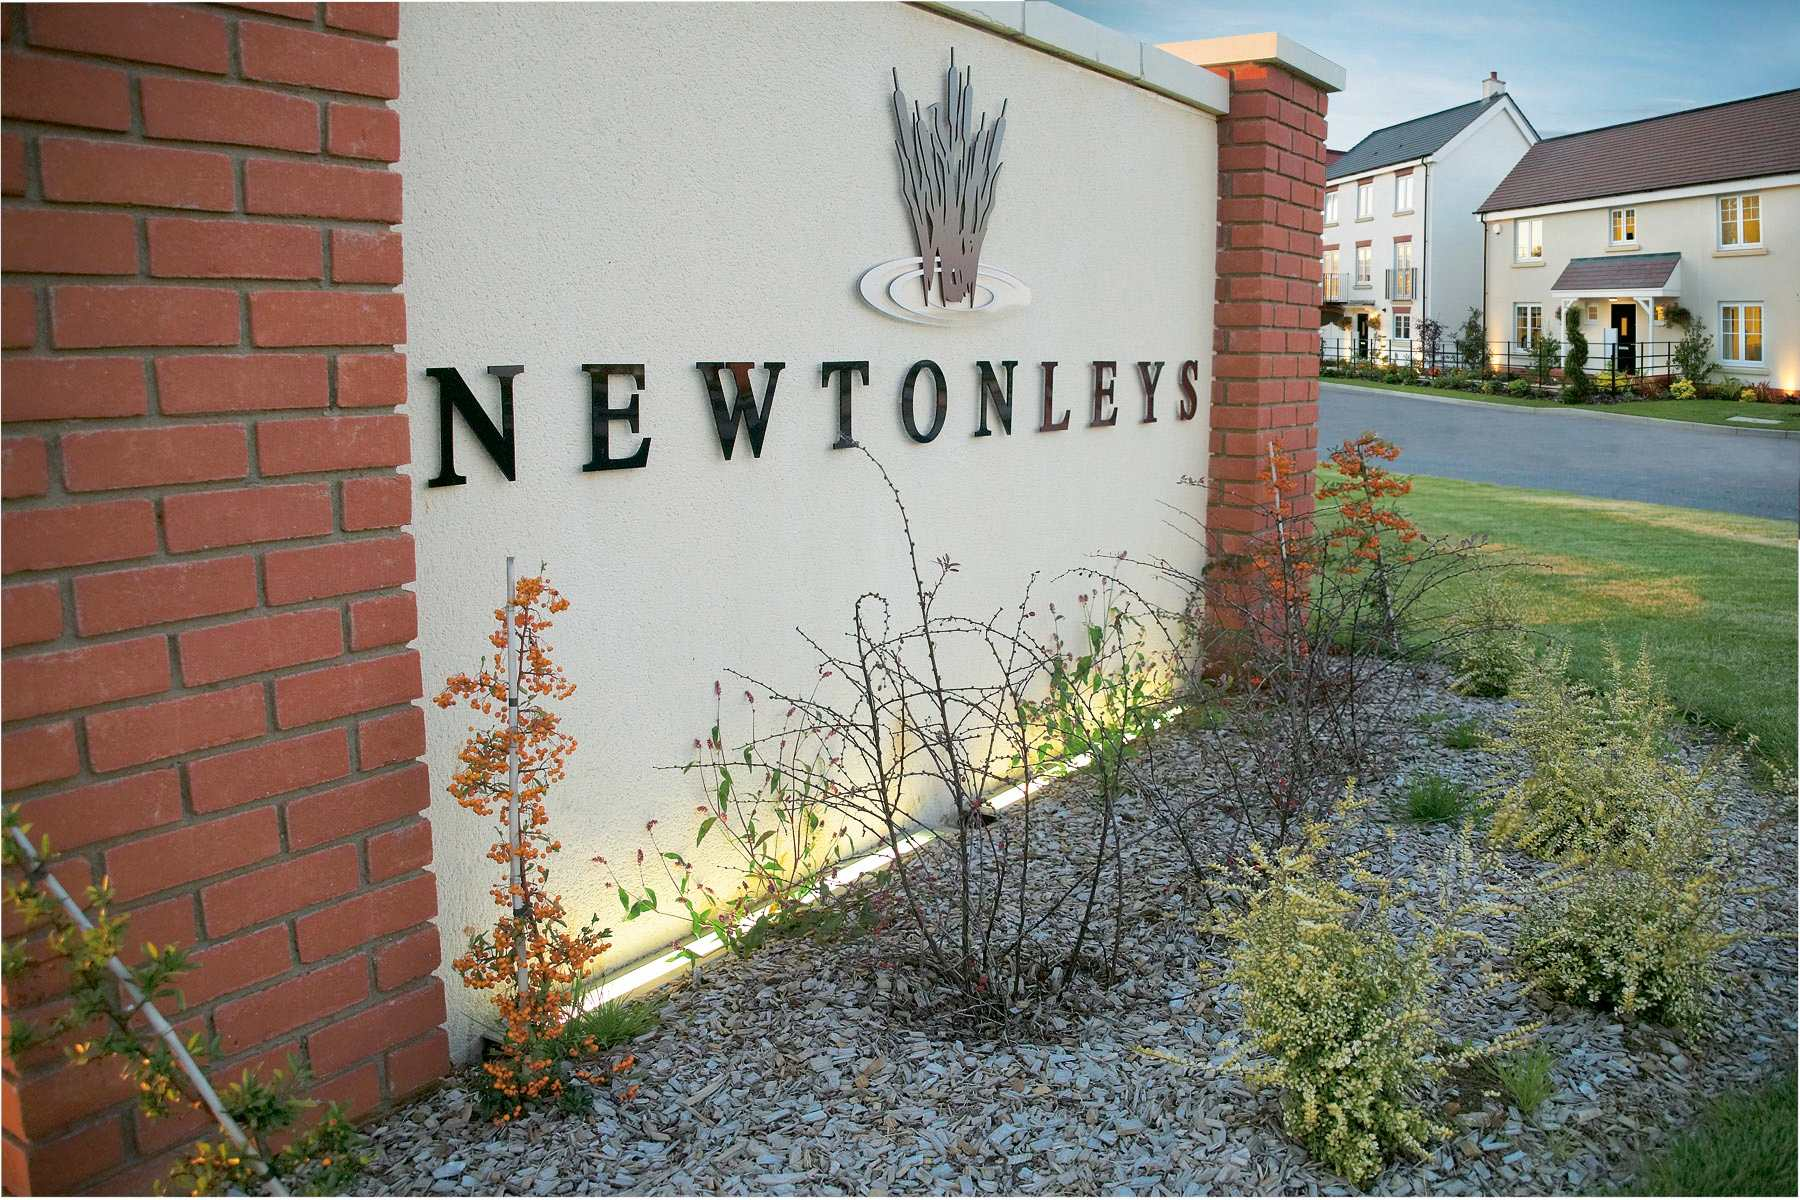 Photo of the sign marking the entrance to Newton Leys